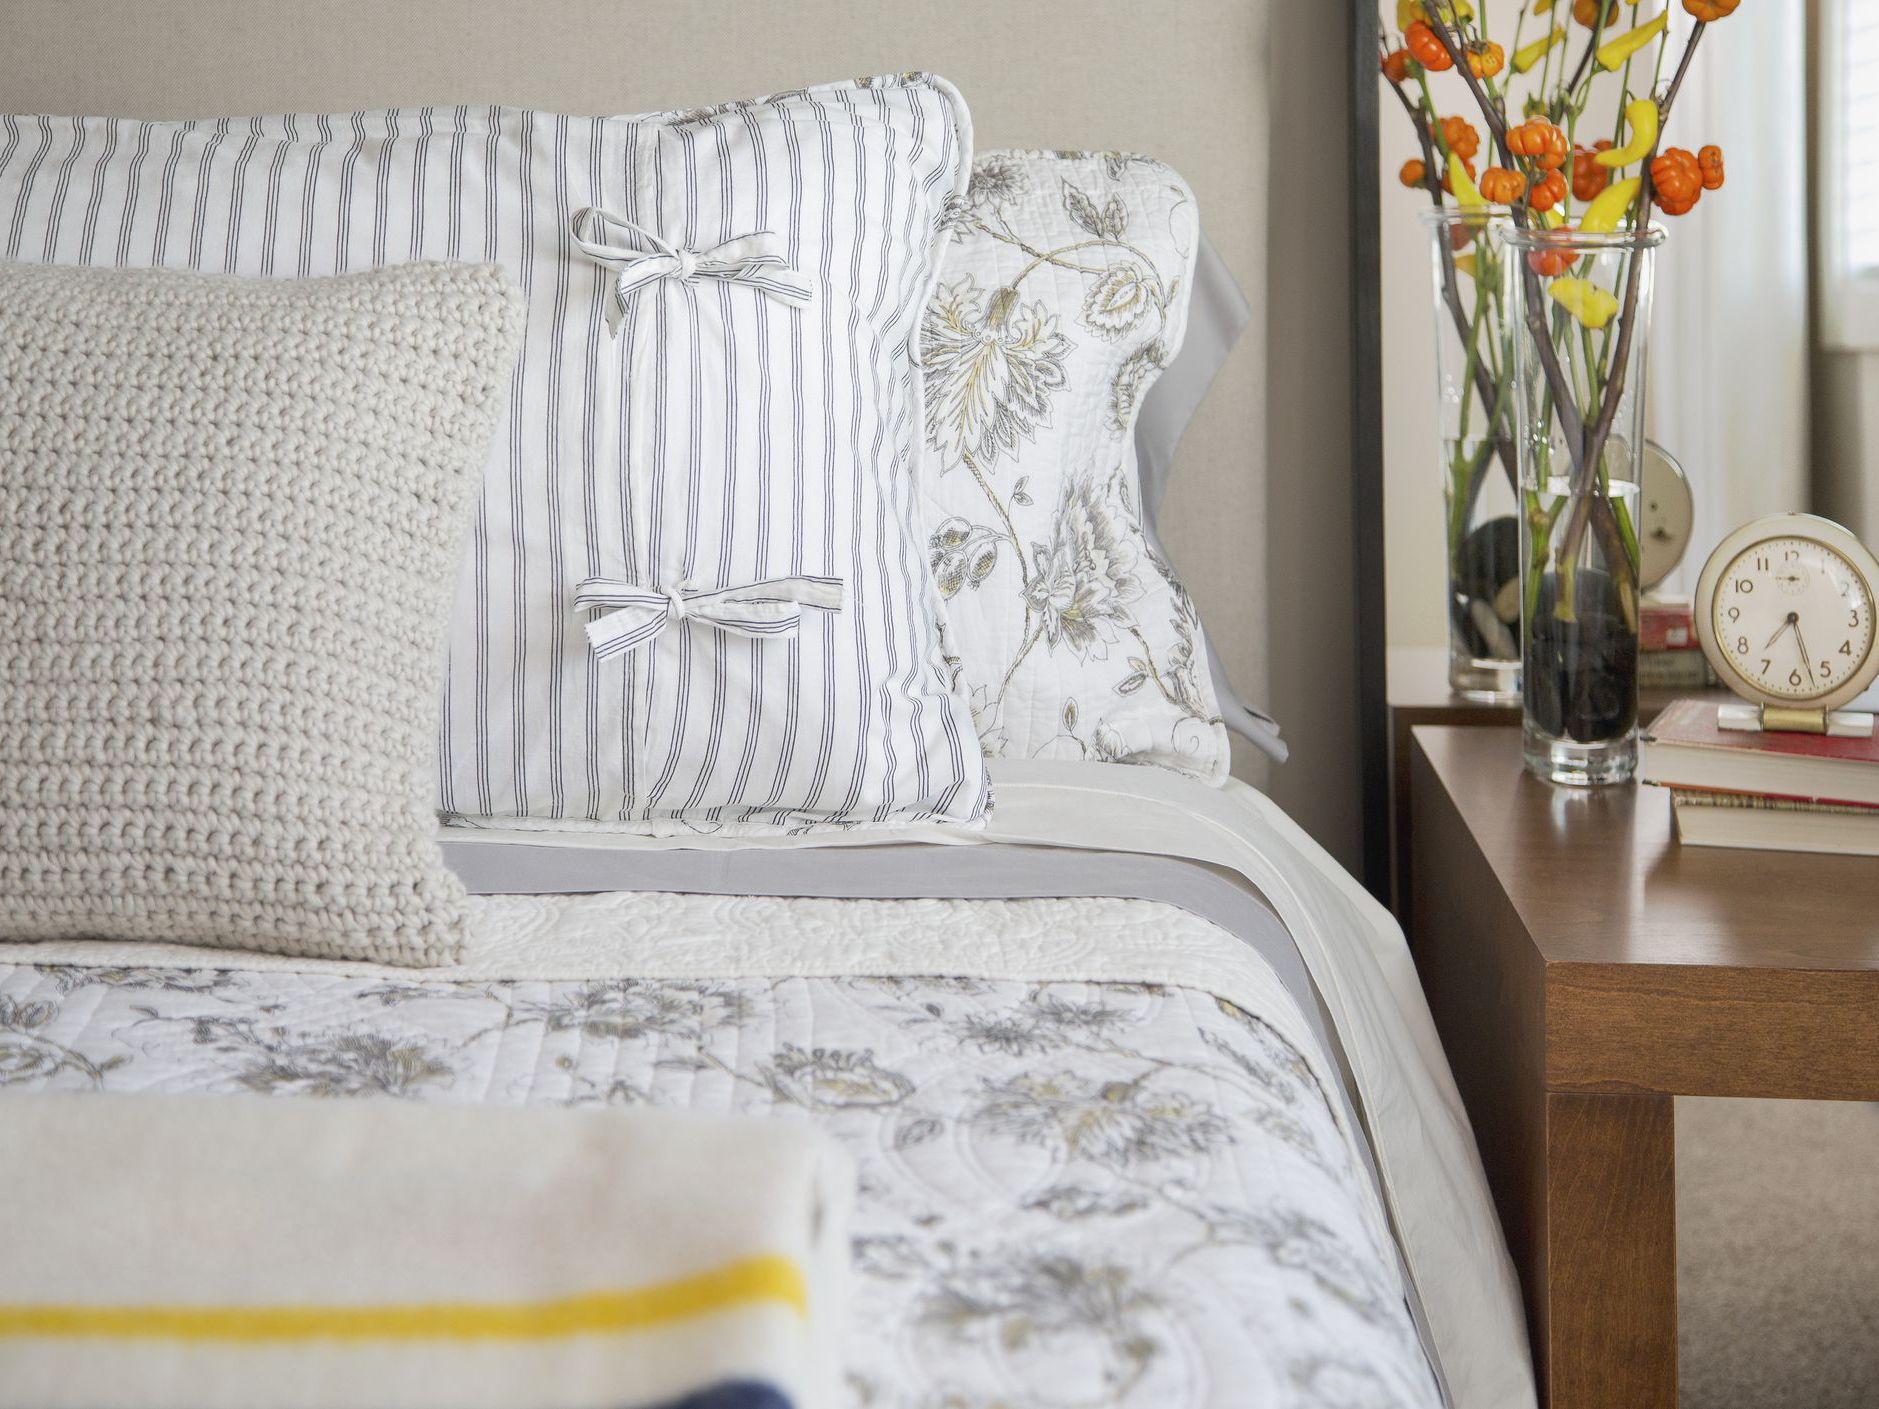 to sew a pillowcase by bed size